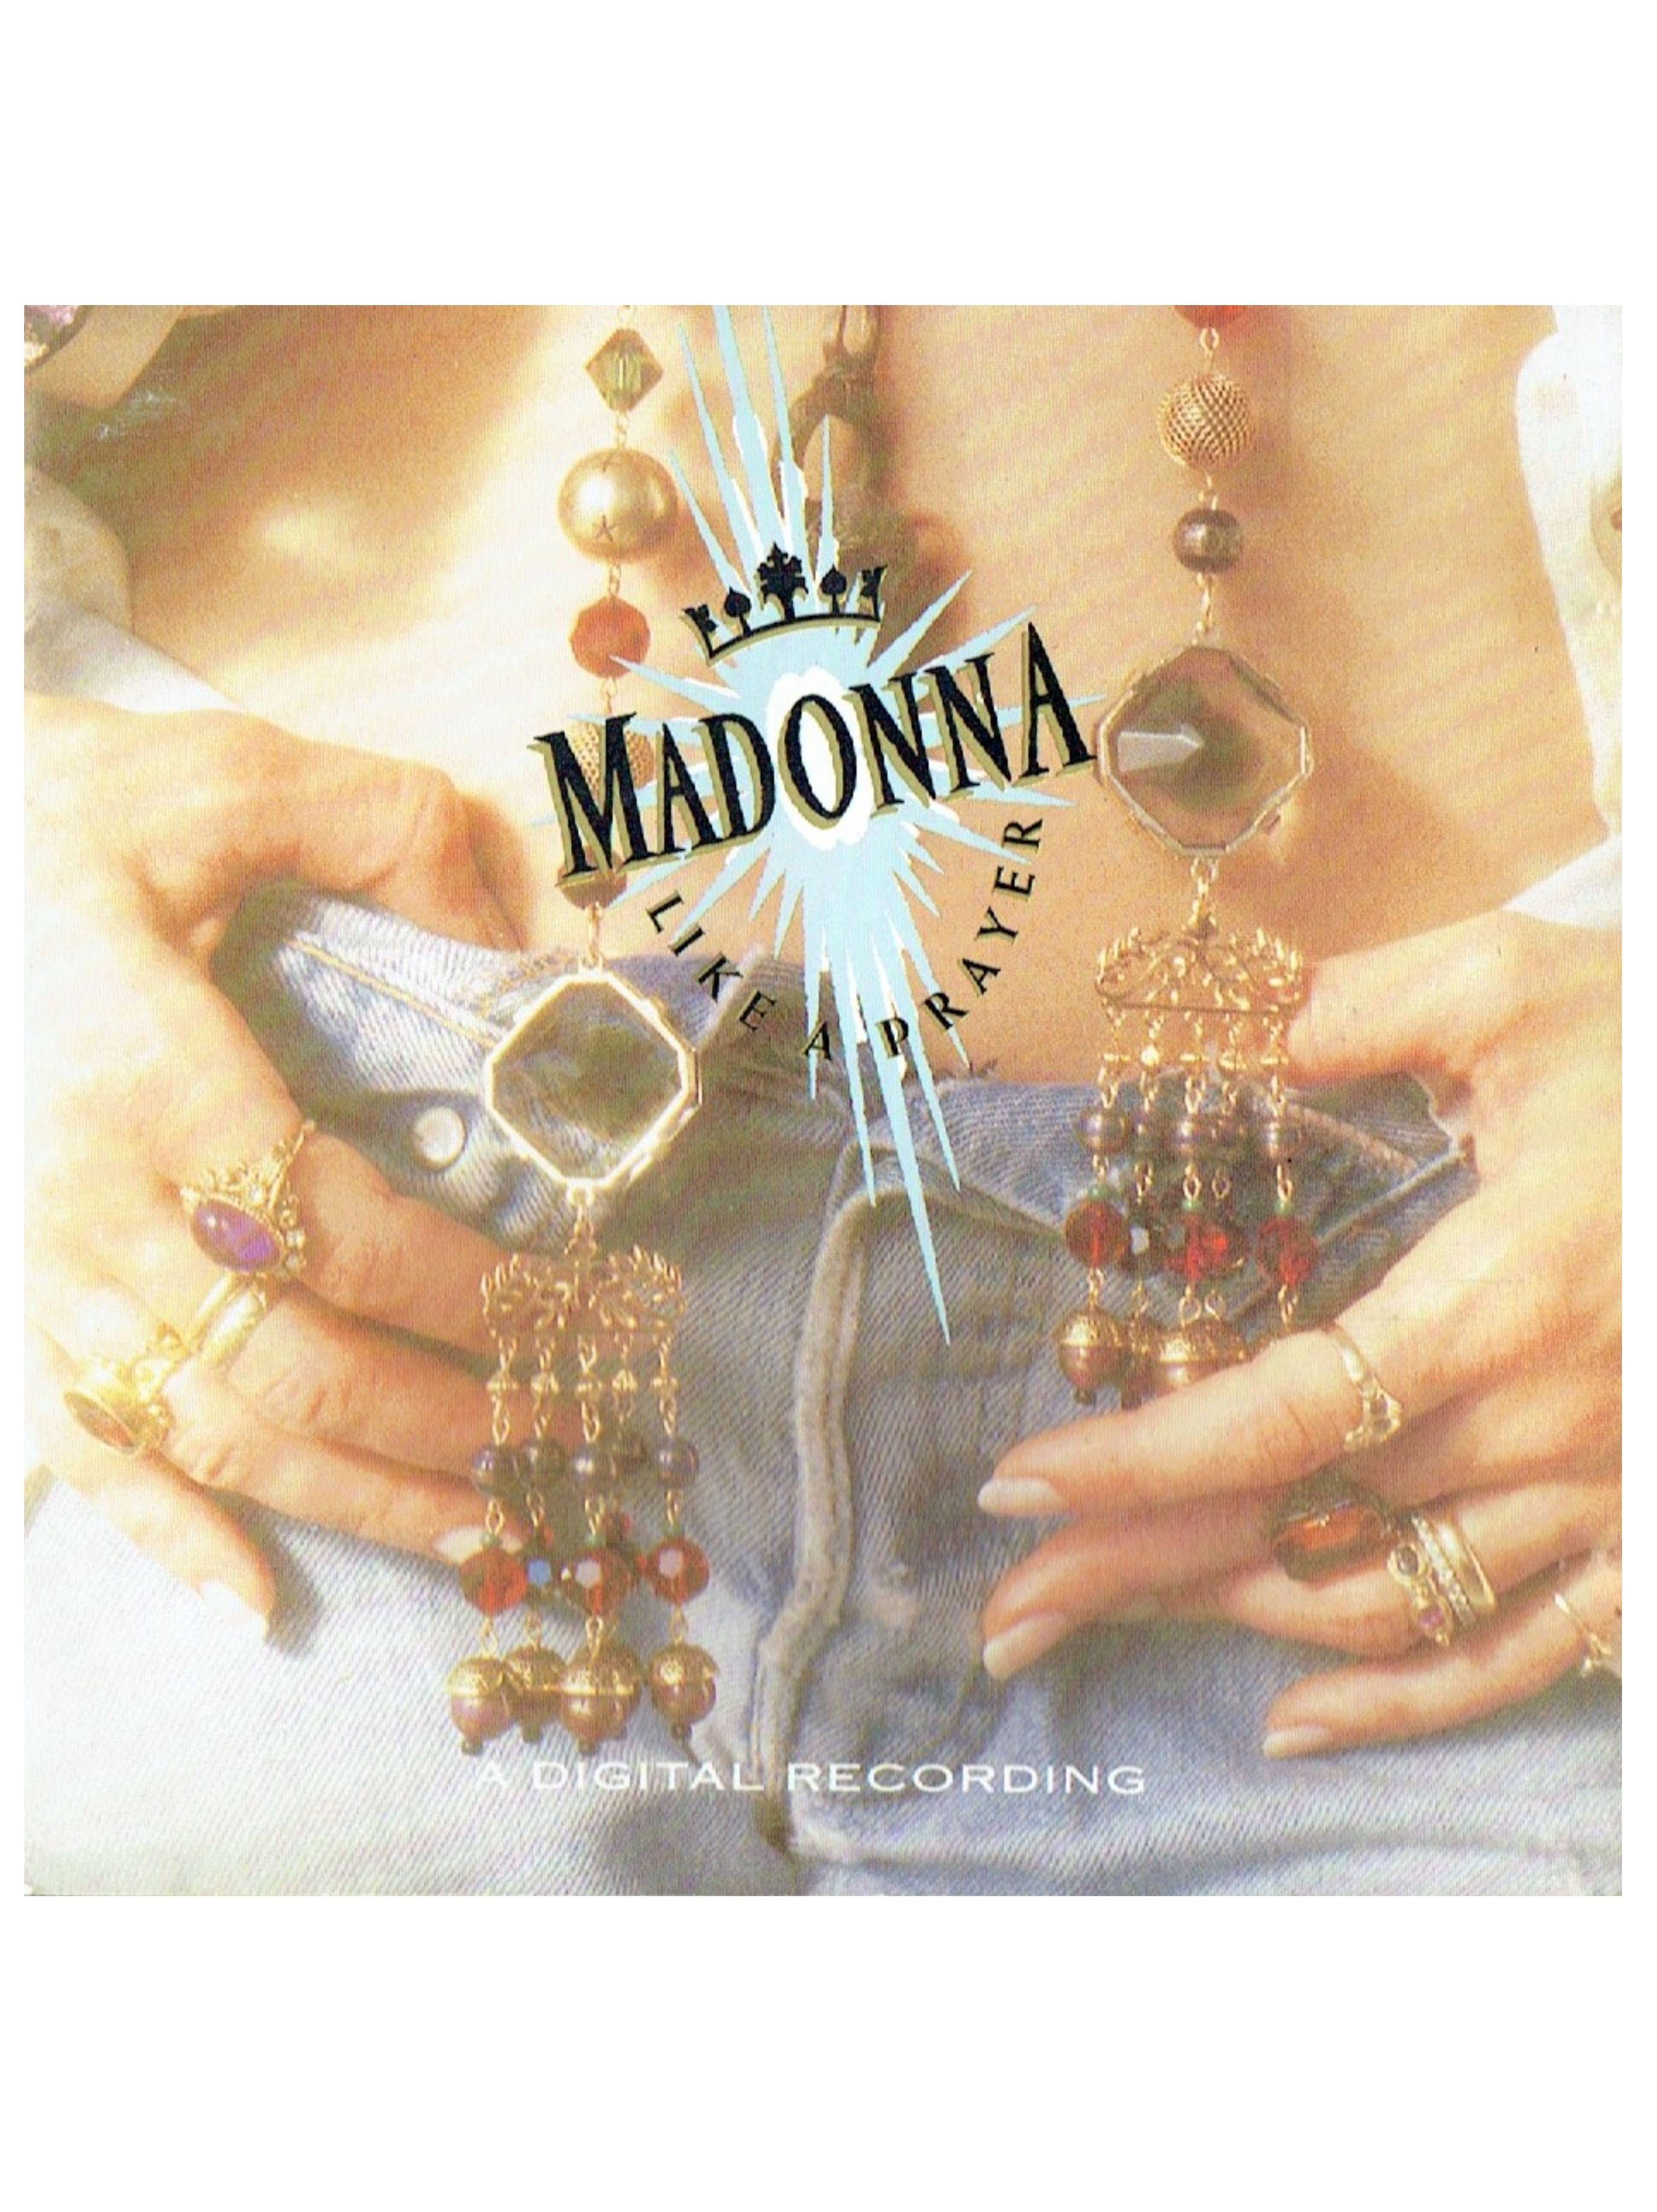 Madonna Like A Prayer CD Album EU Release Includes Love Song Prince